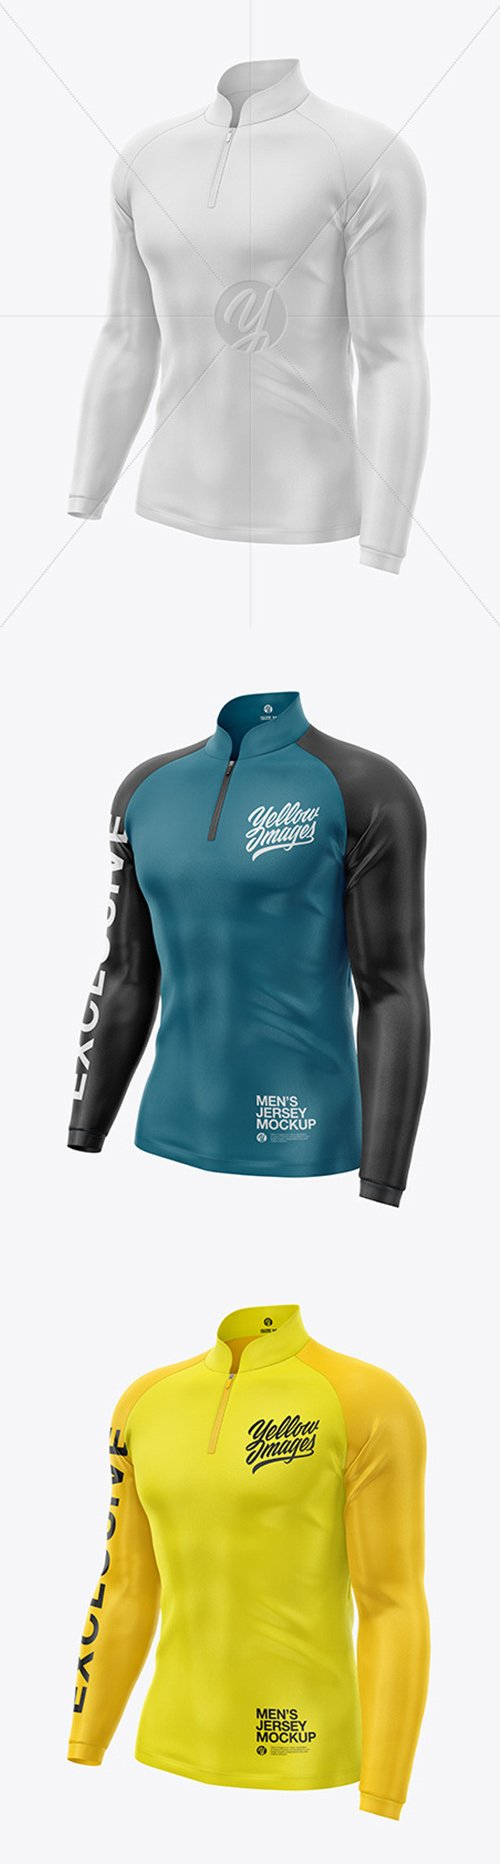 Mens Jersey With Long Sleeve Mockup - Front Half Side View 49461